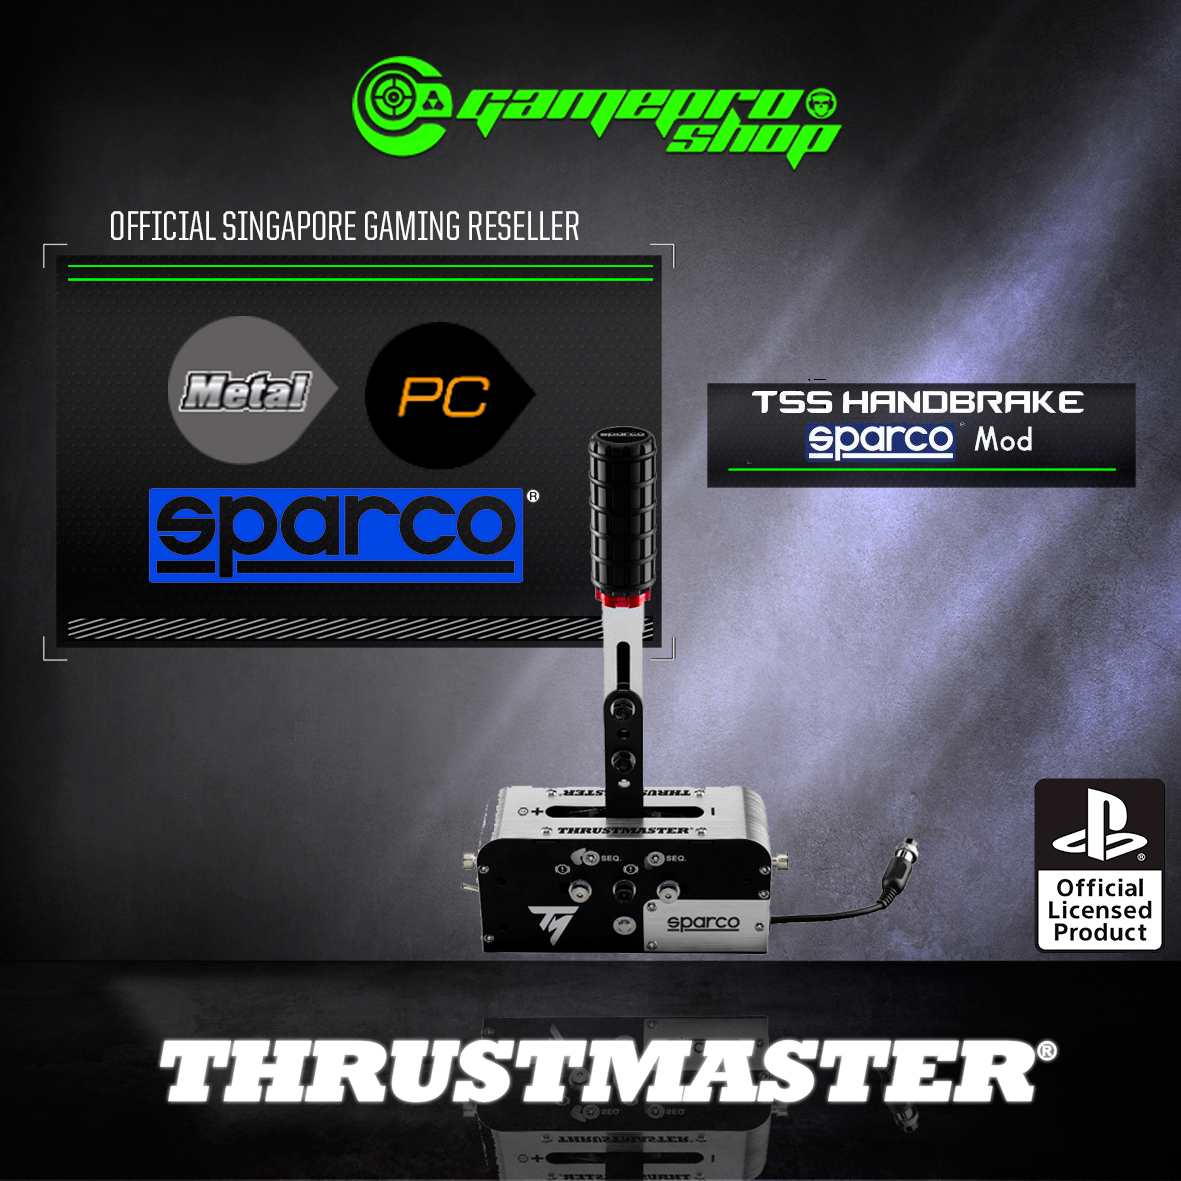 Thrustmaster TSS Handbrake Sparco Mod Plus For PC / PS3 / PS4 / Xbox One